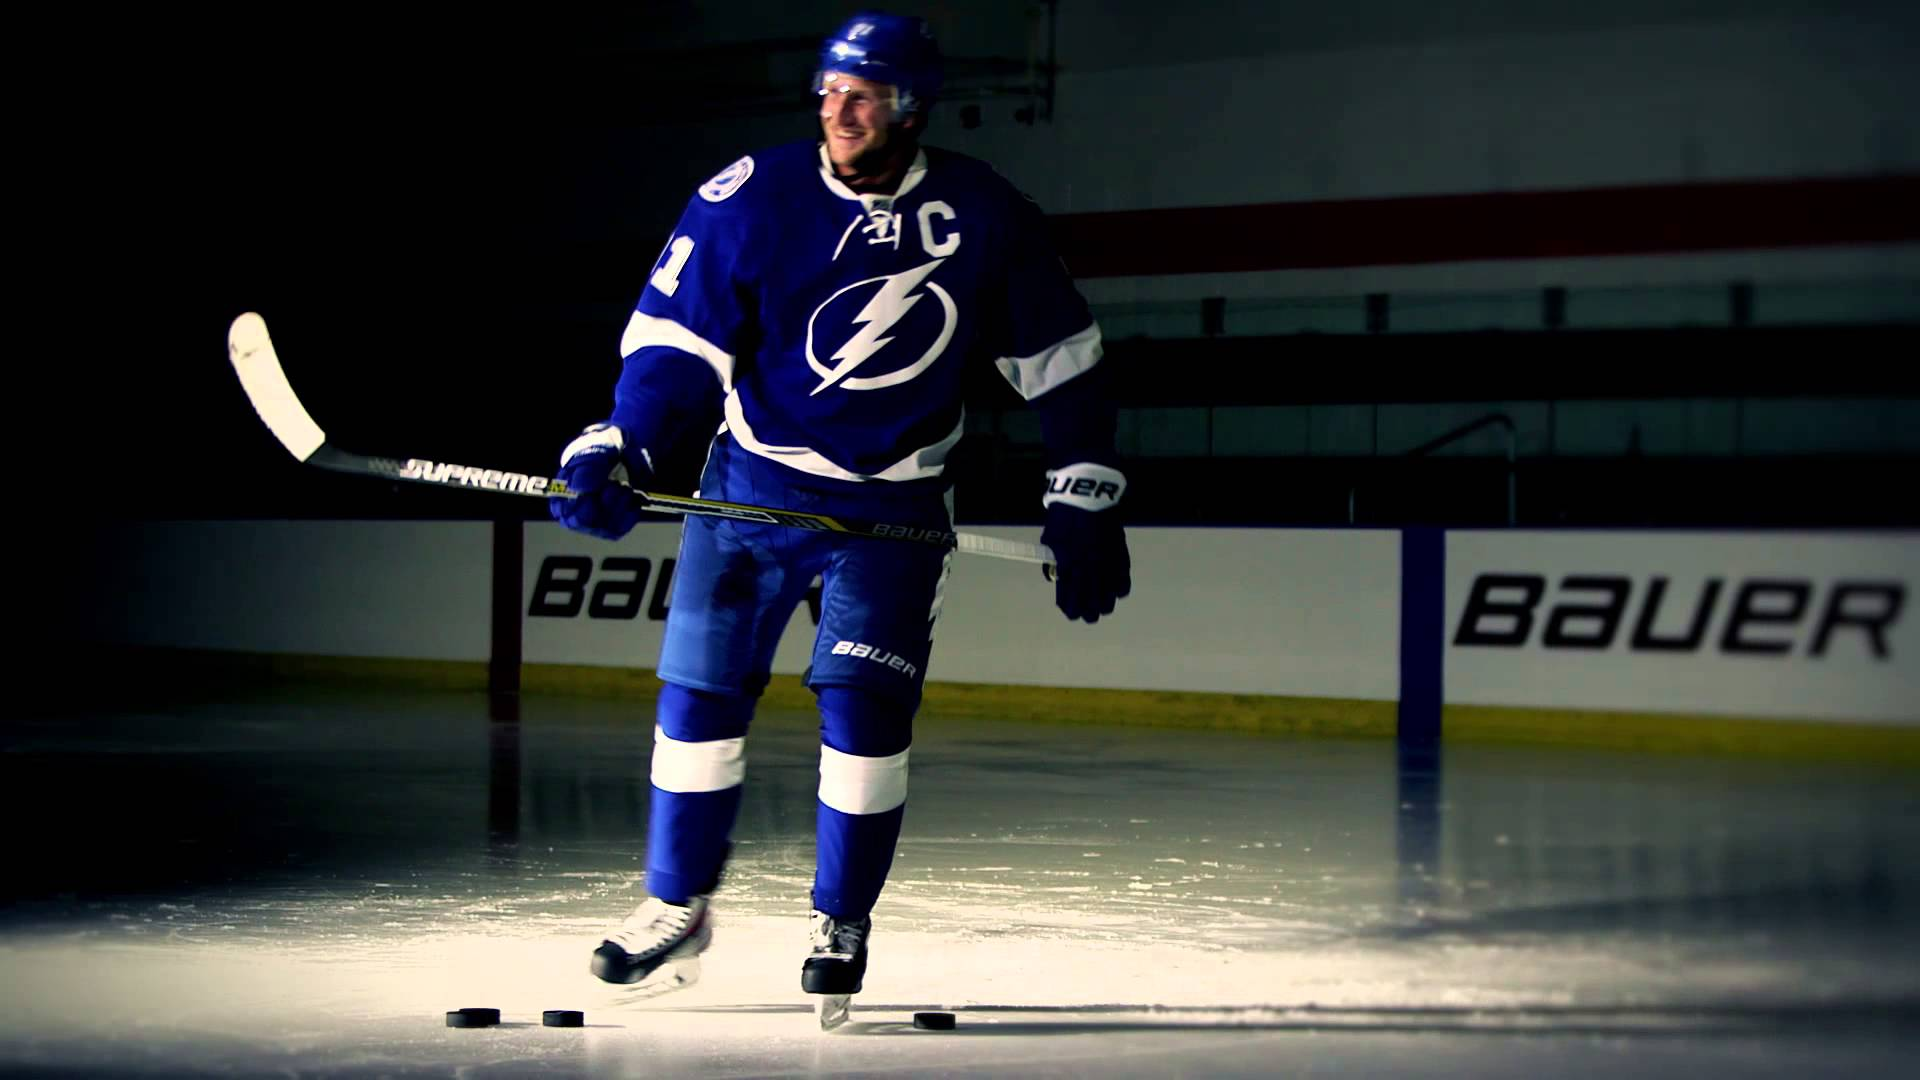 Steven Stamkos Wallpapers High Resolution And Quality DownloadSteven